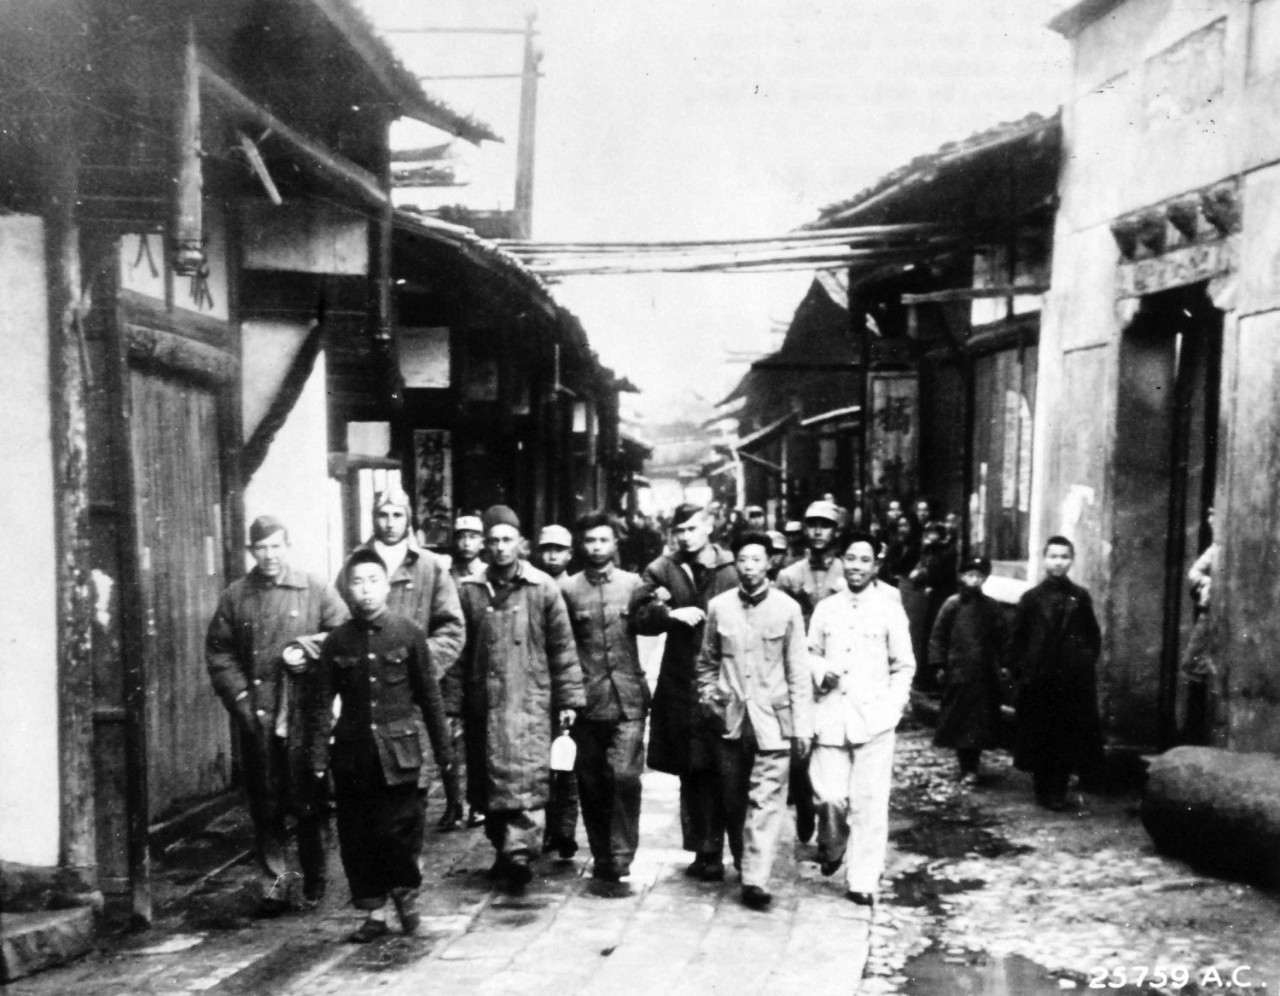 111-SC-A-25759AC-1:   Doolittle Raid on Japan, April 18, 1942.  Chinese soldiers bring in a group of General Doolittle's Tokyo Raiders to the tiny village near where their bomber crashed.  Center right, his arm held by a Chinese, is Colonel John Hilger, who was injured, April 21.    U.S. Army photograph, now in the collections of the National Archives.  (2017/05/02).